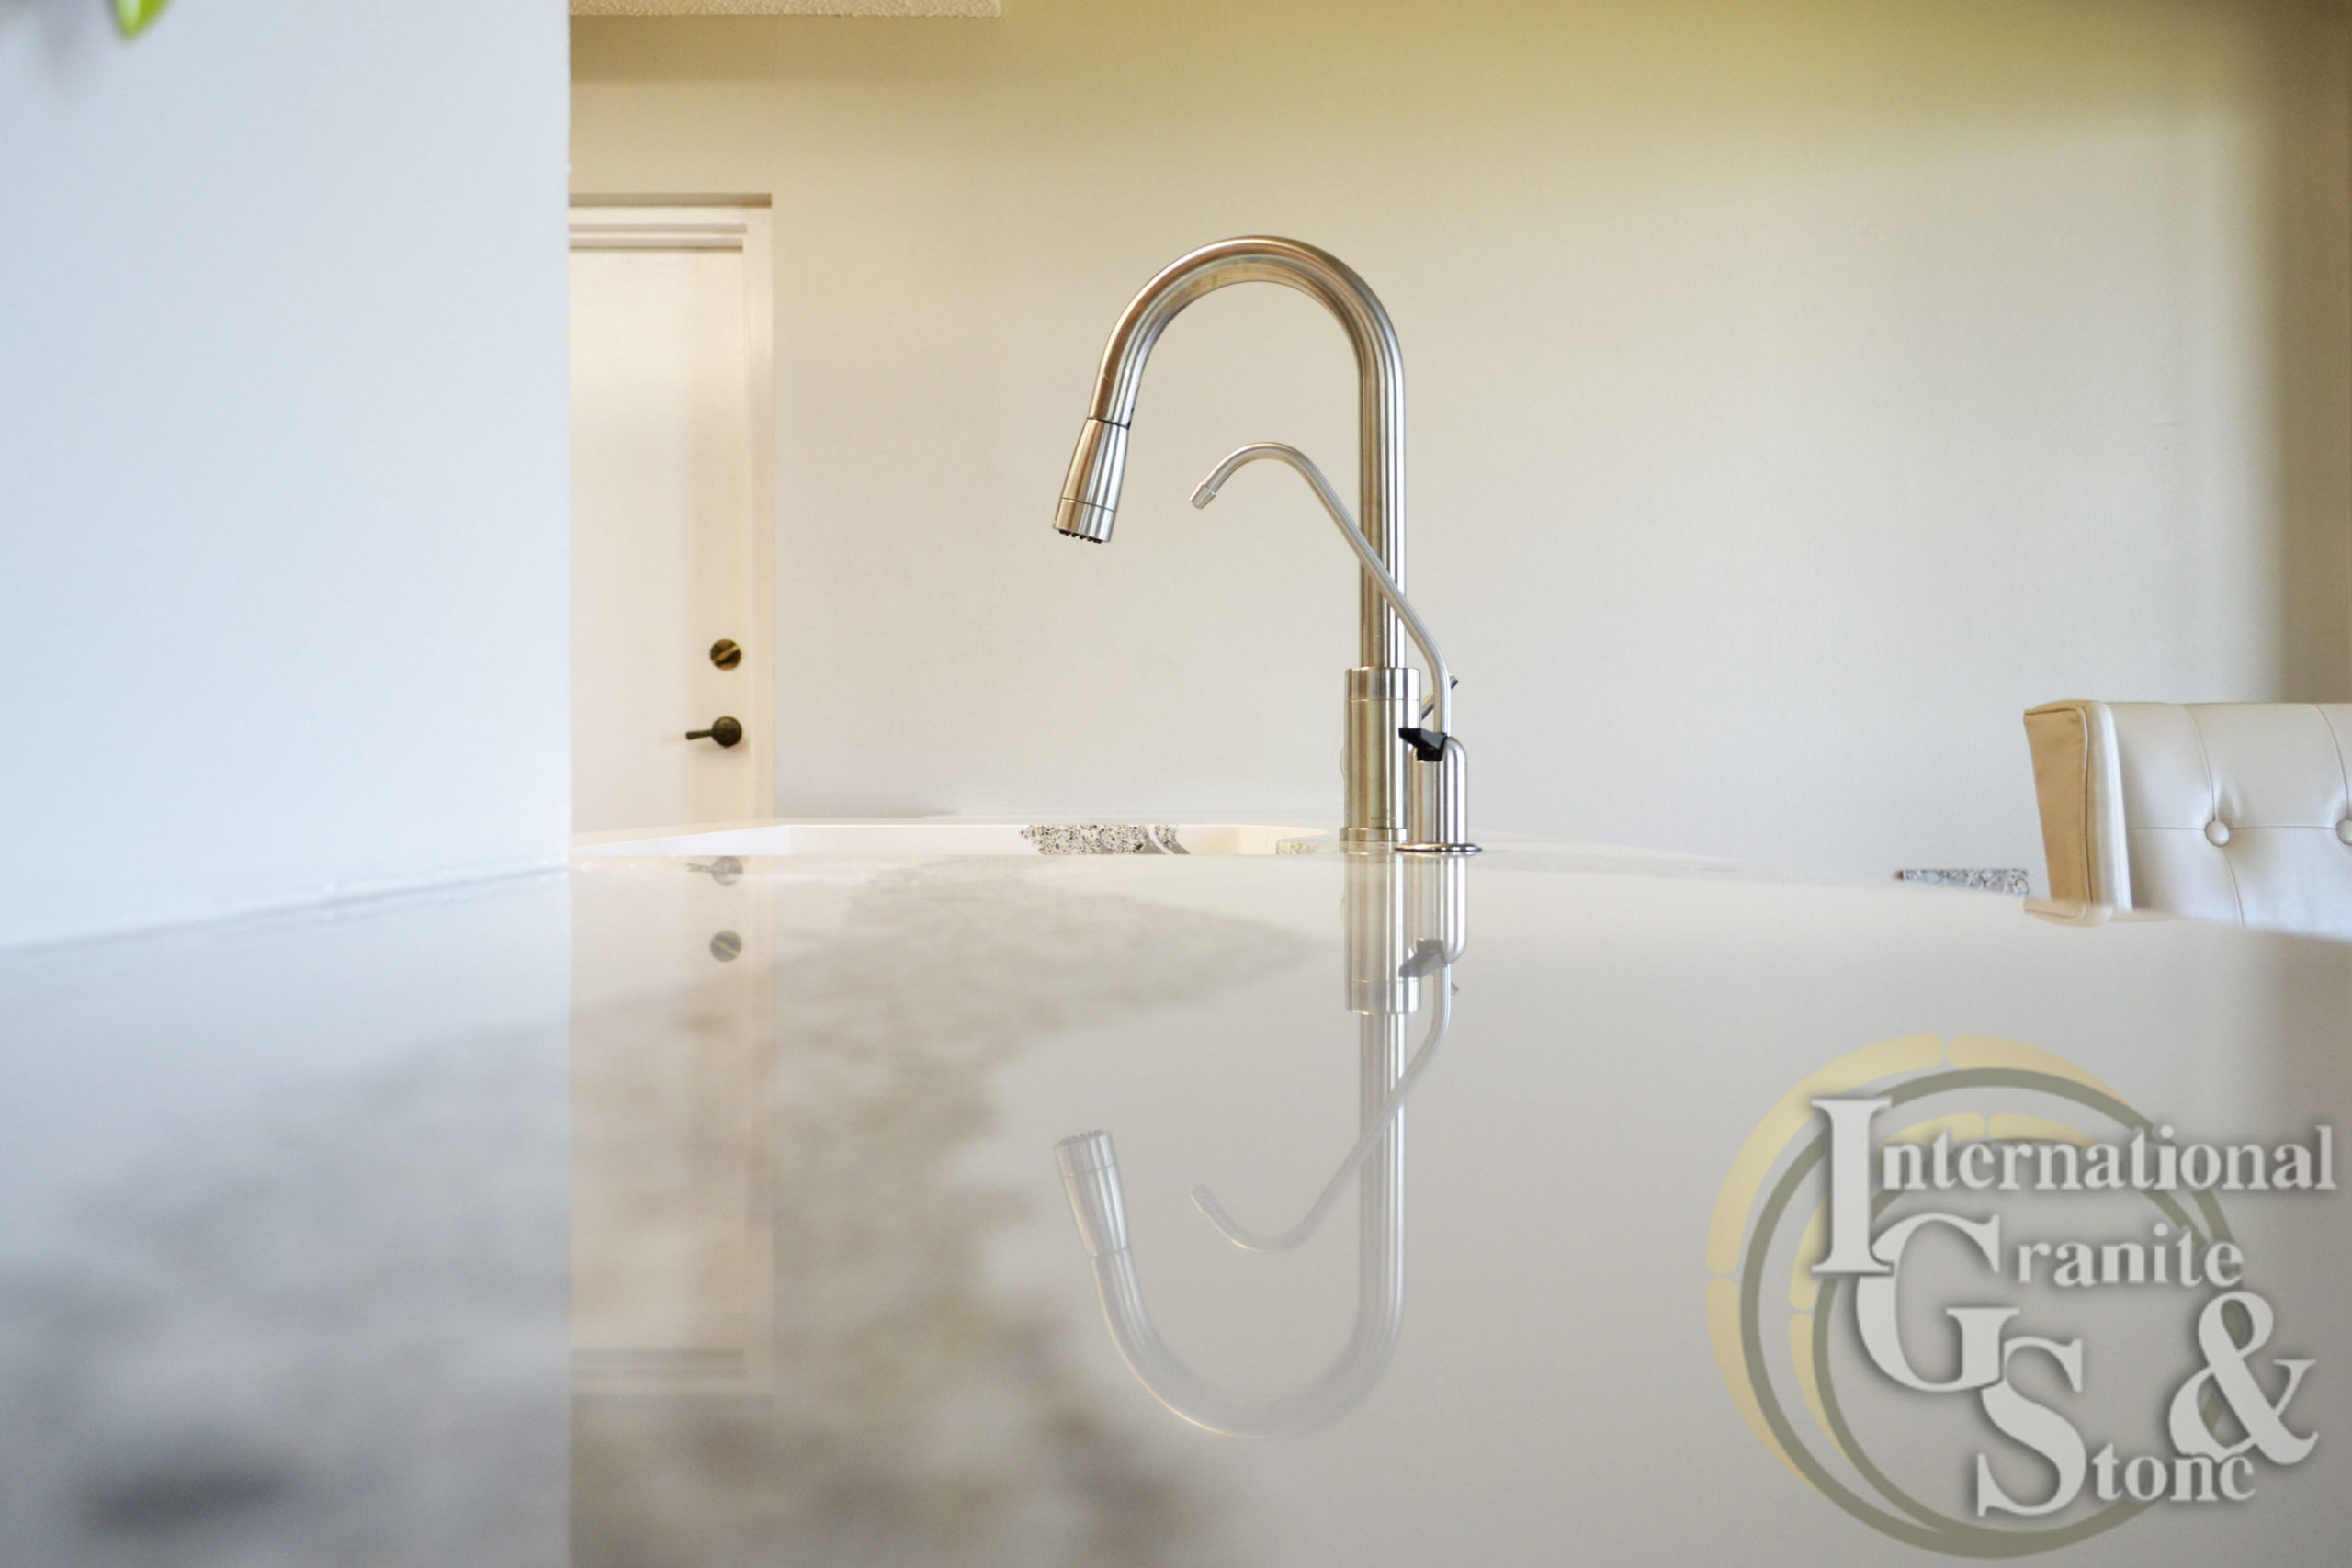 Stainless Steel Sink Faucet in Kitchen